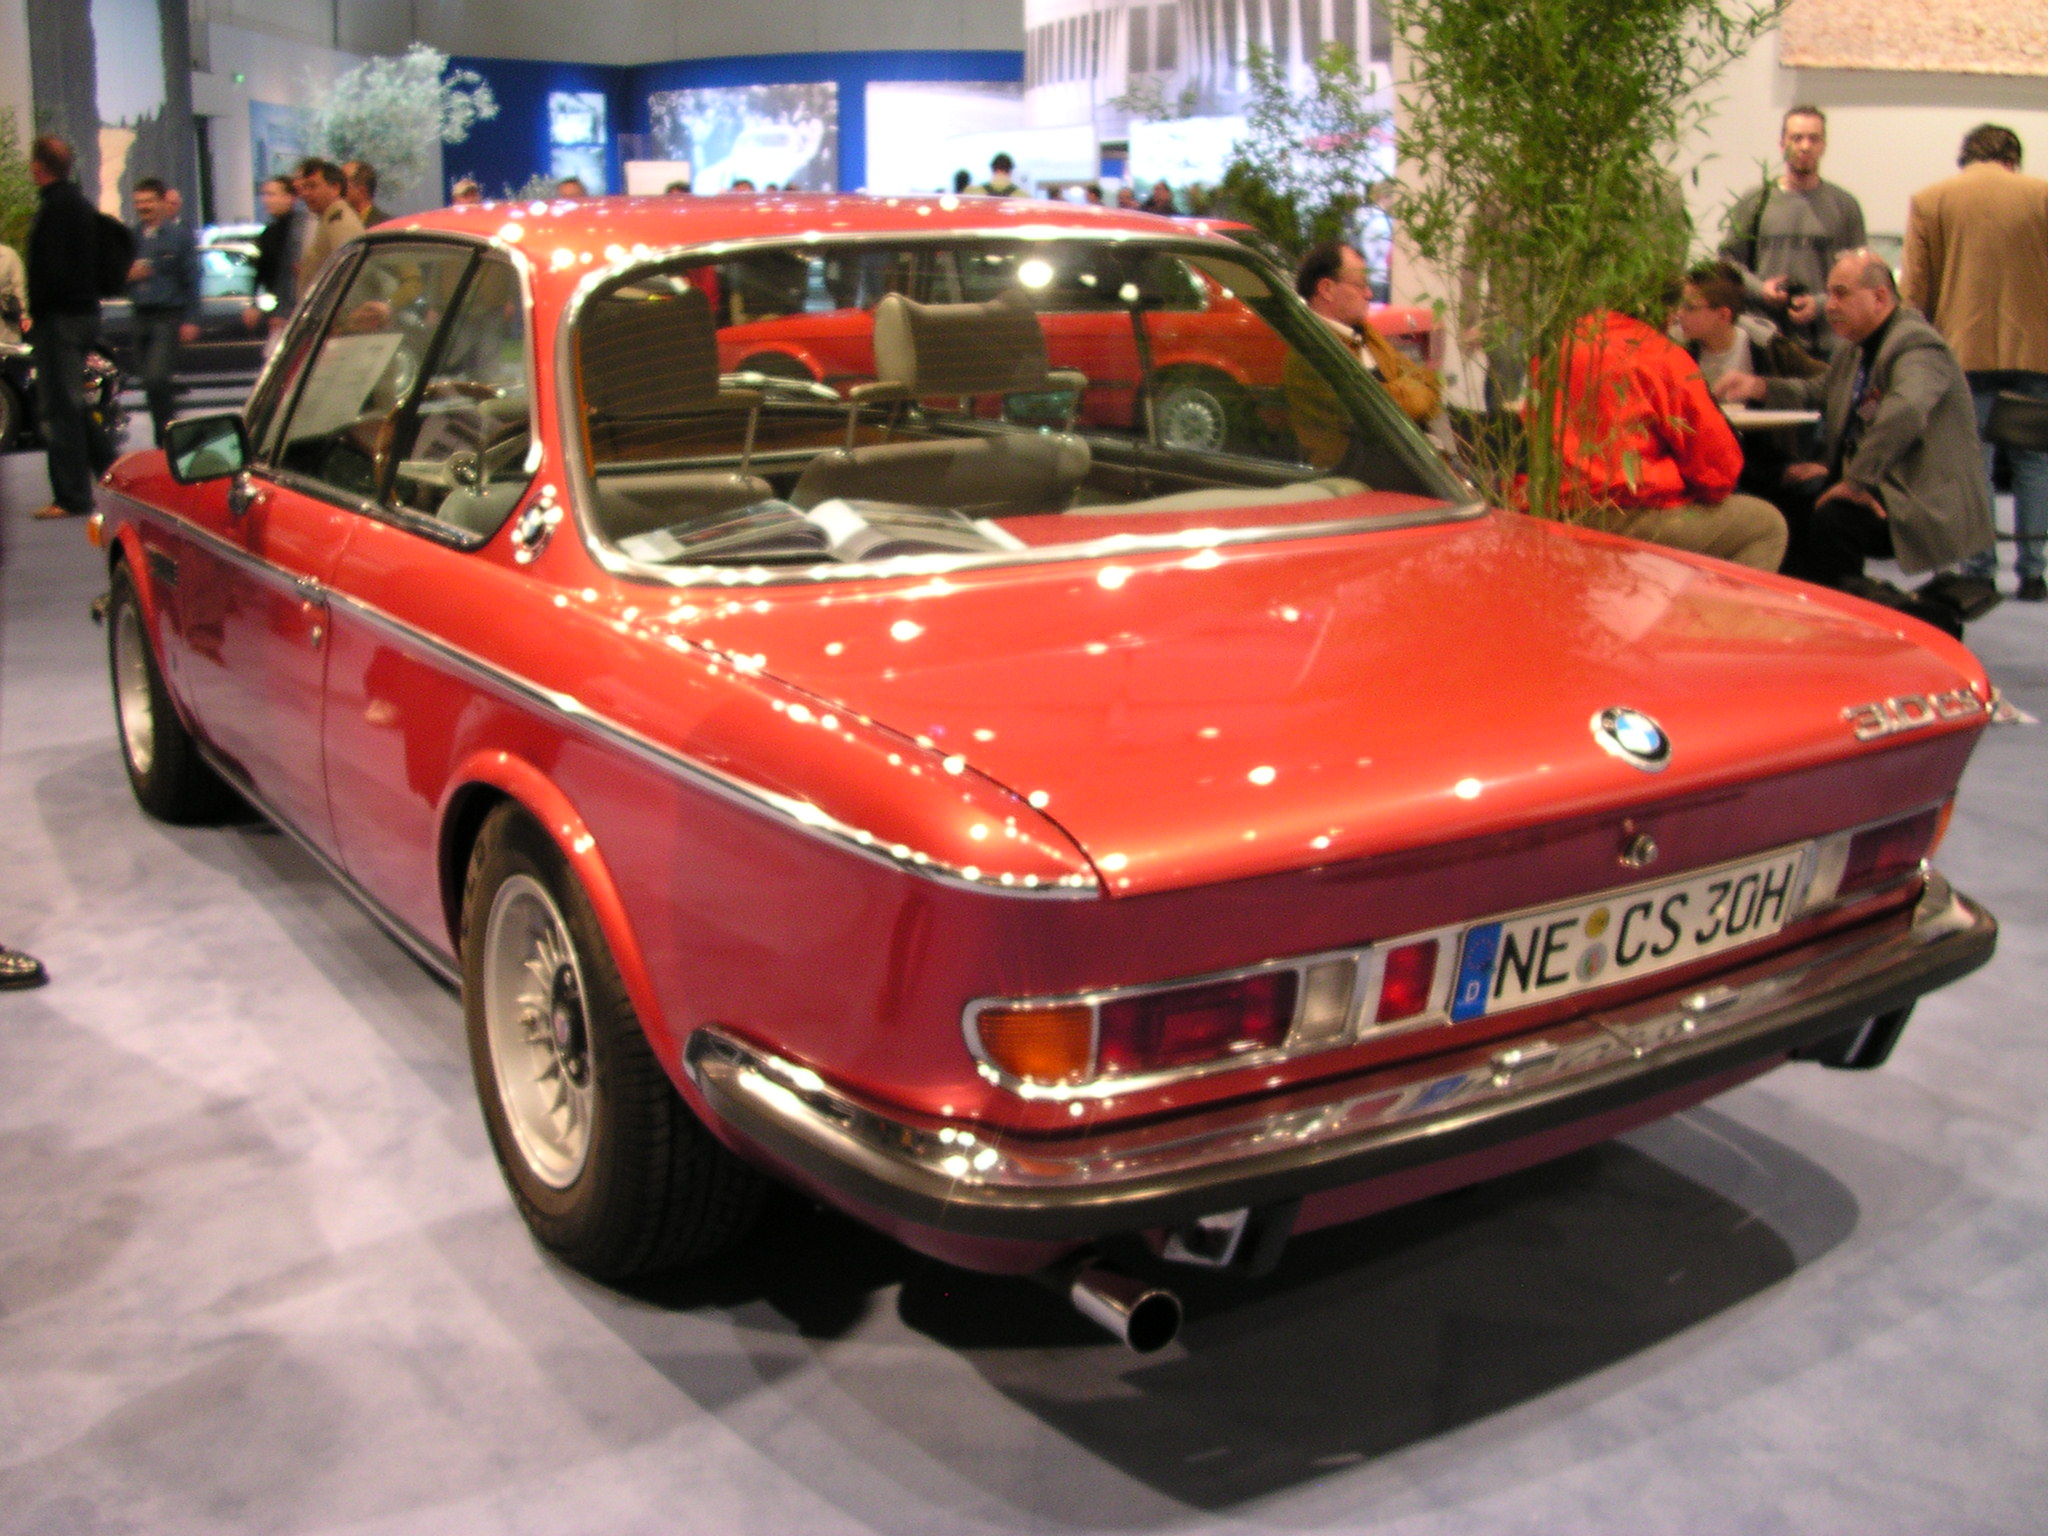 Bmw 30csi photo - 1